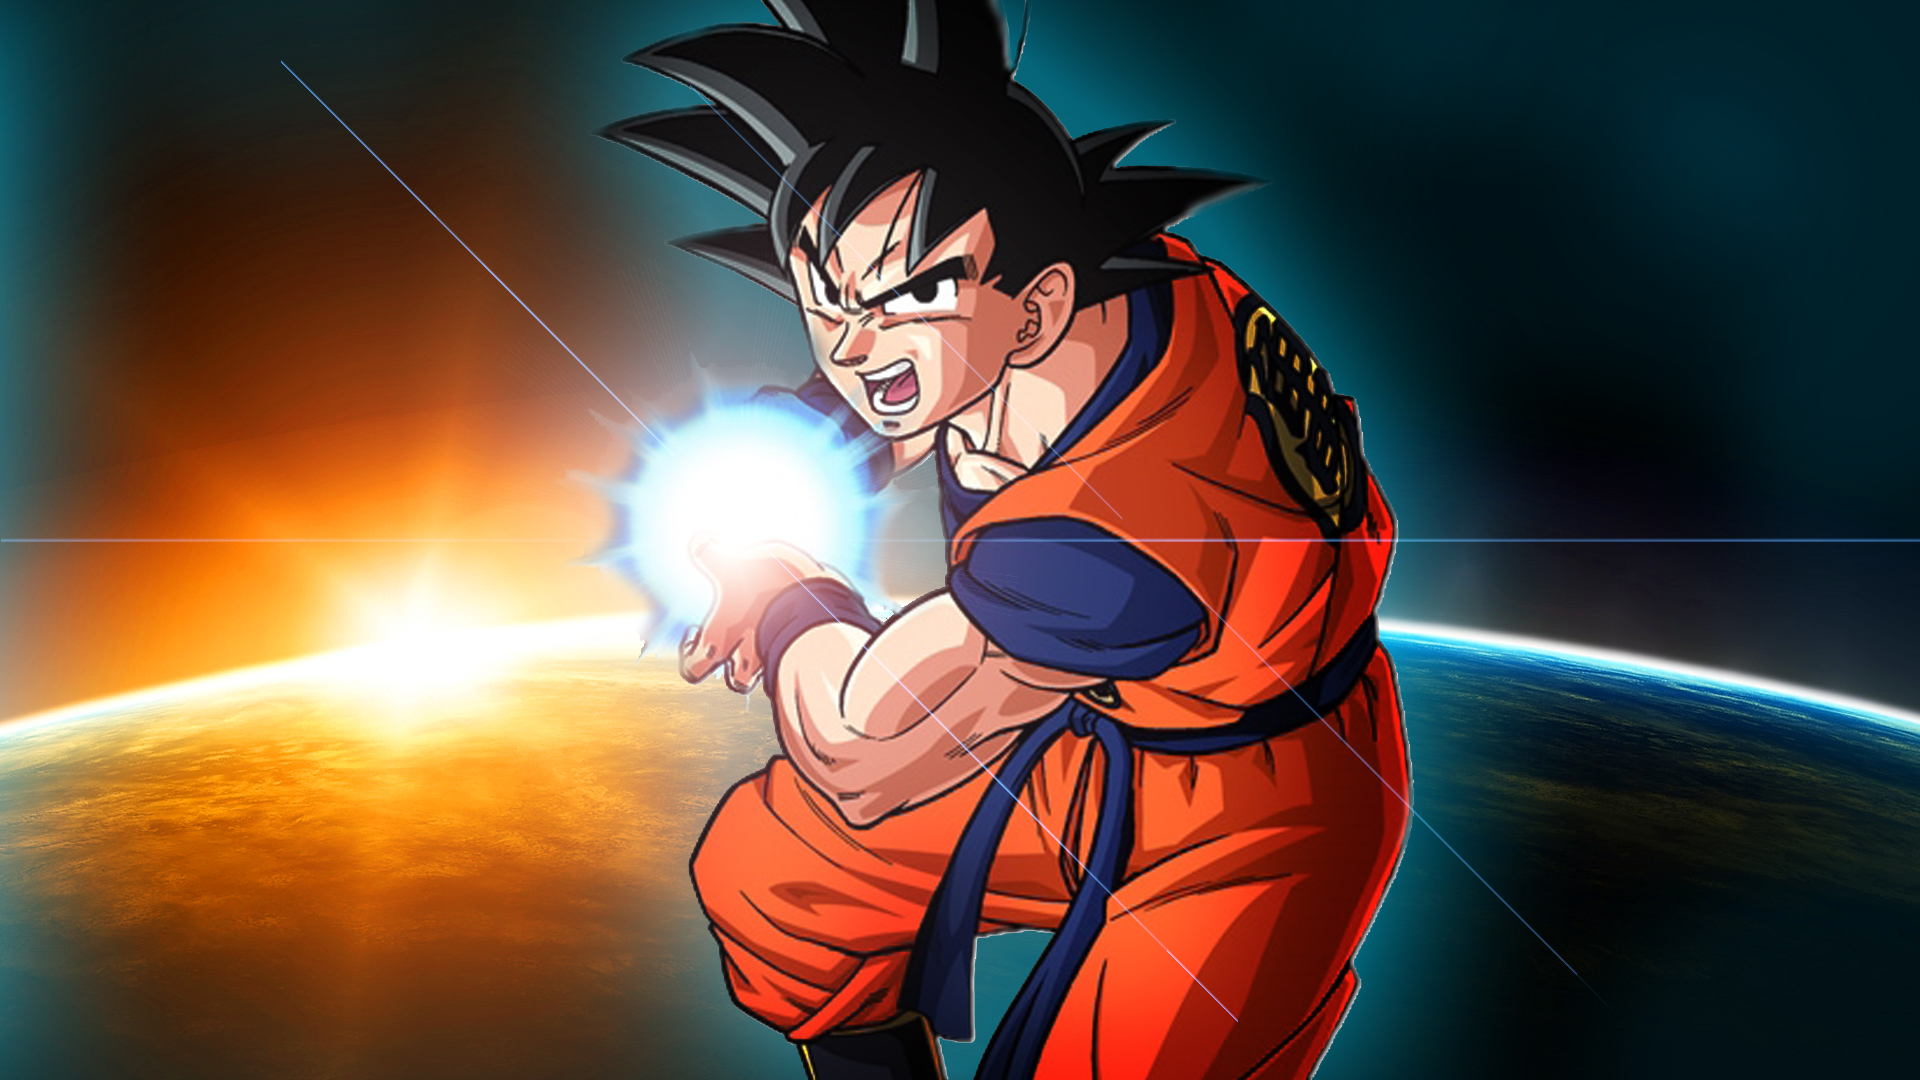 comwallpapers43815goku kamehameha dbz kakarot hd wallpaperhtml 1920x1080